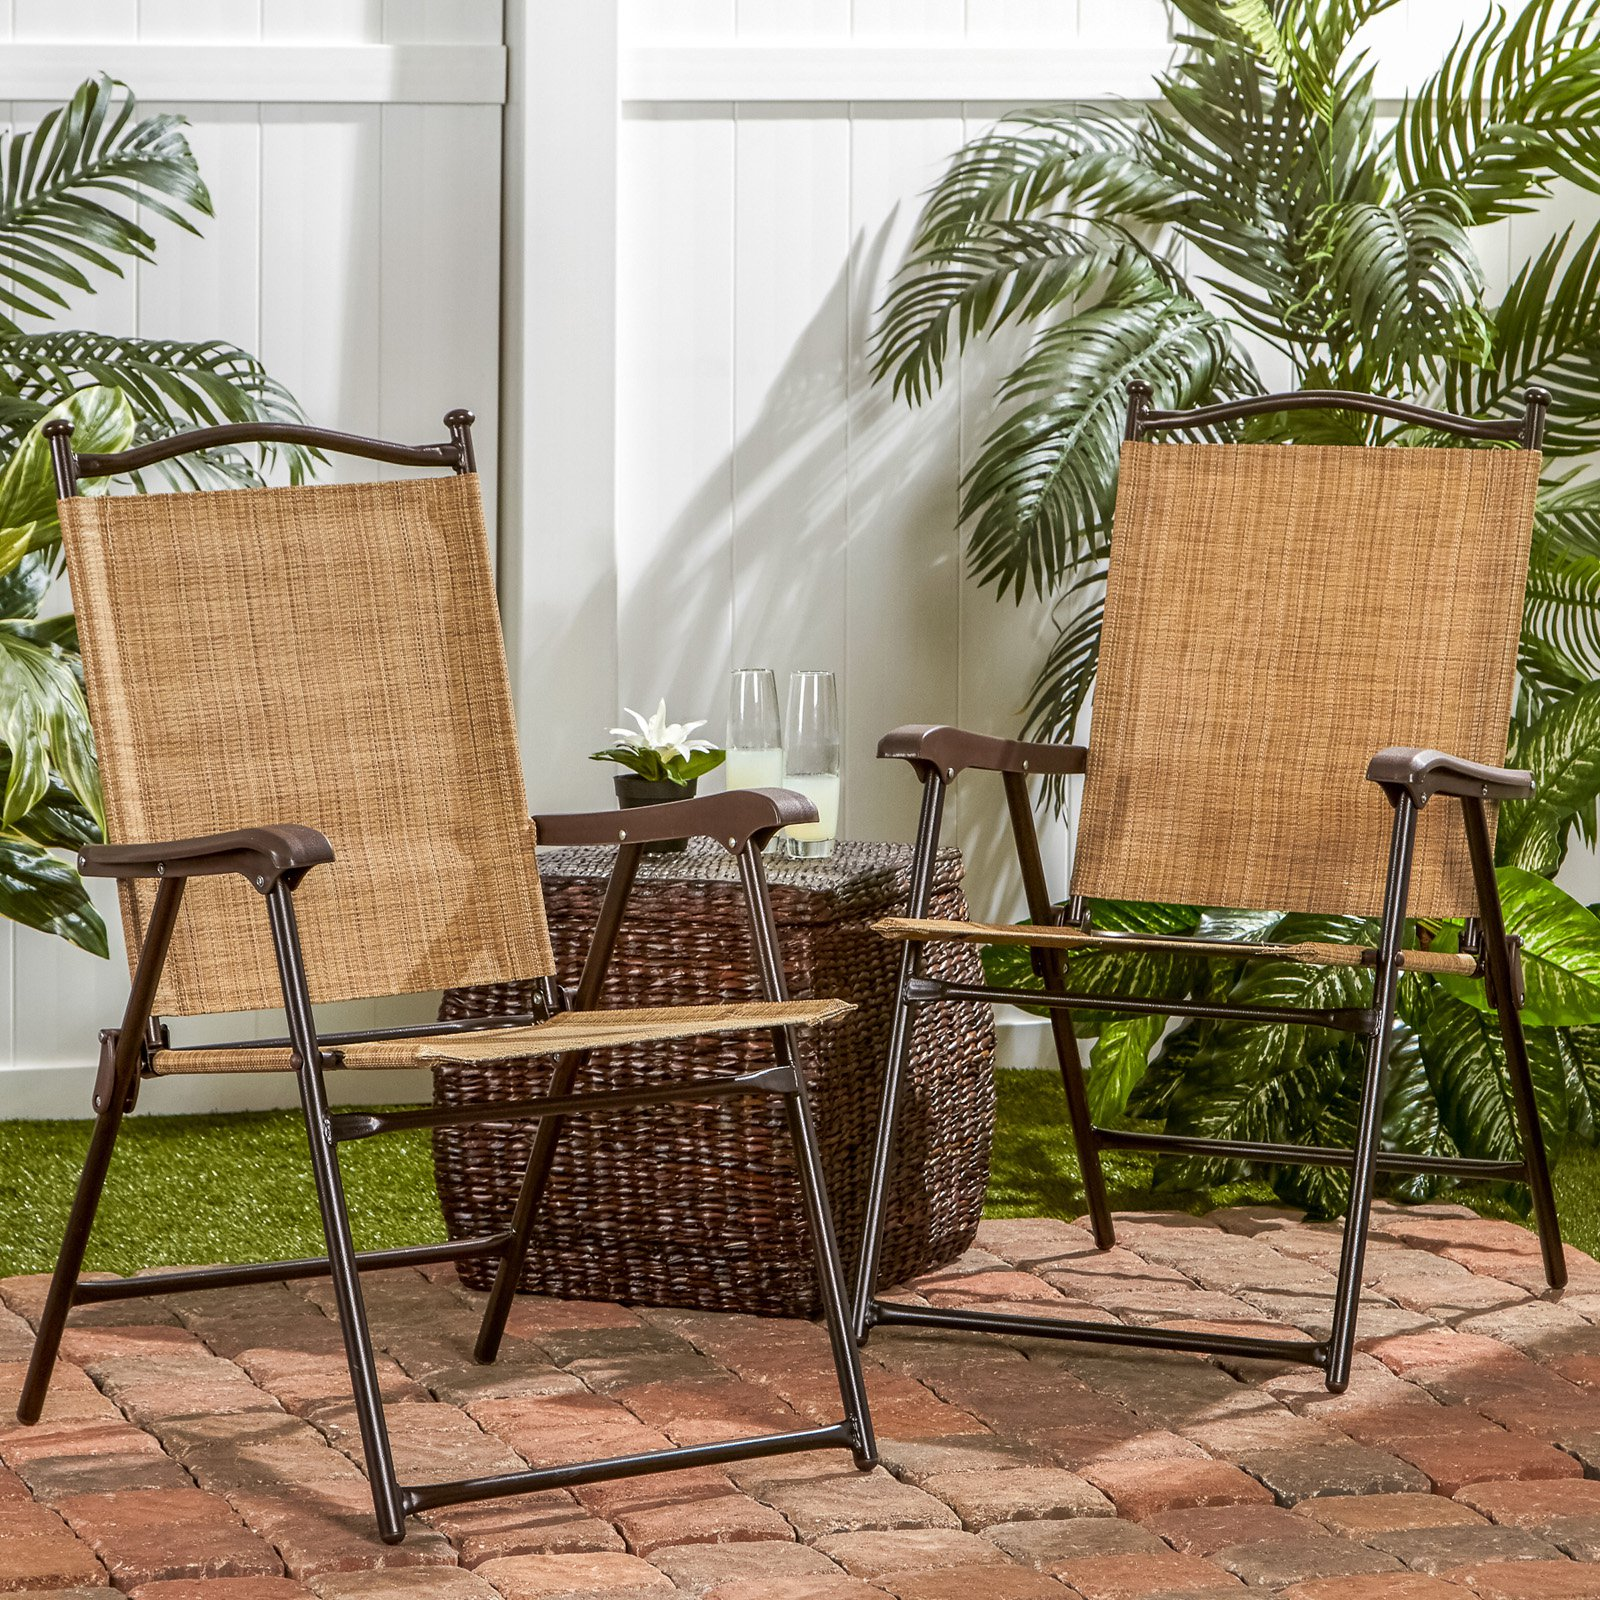 & Sling Black Outdoor Chairs Bamboo Set of 2 - Walmart.com